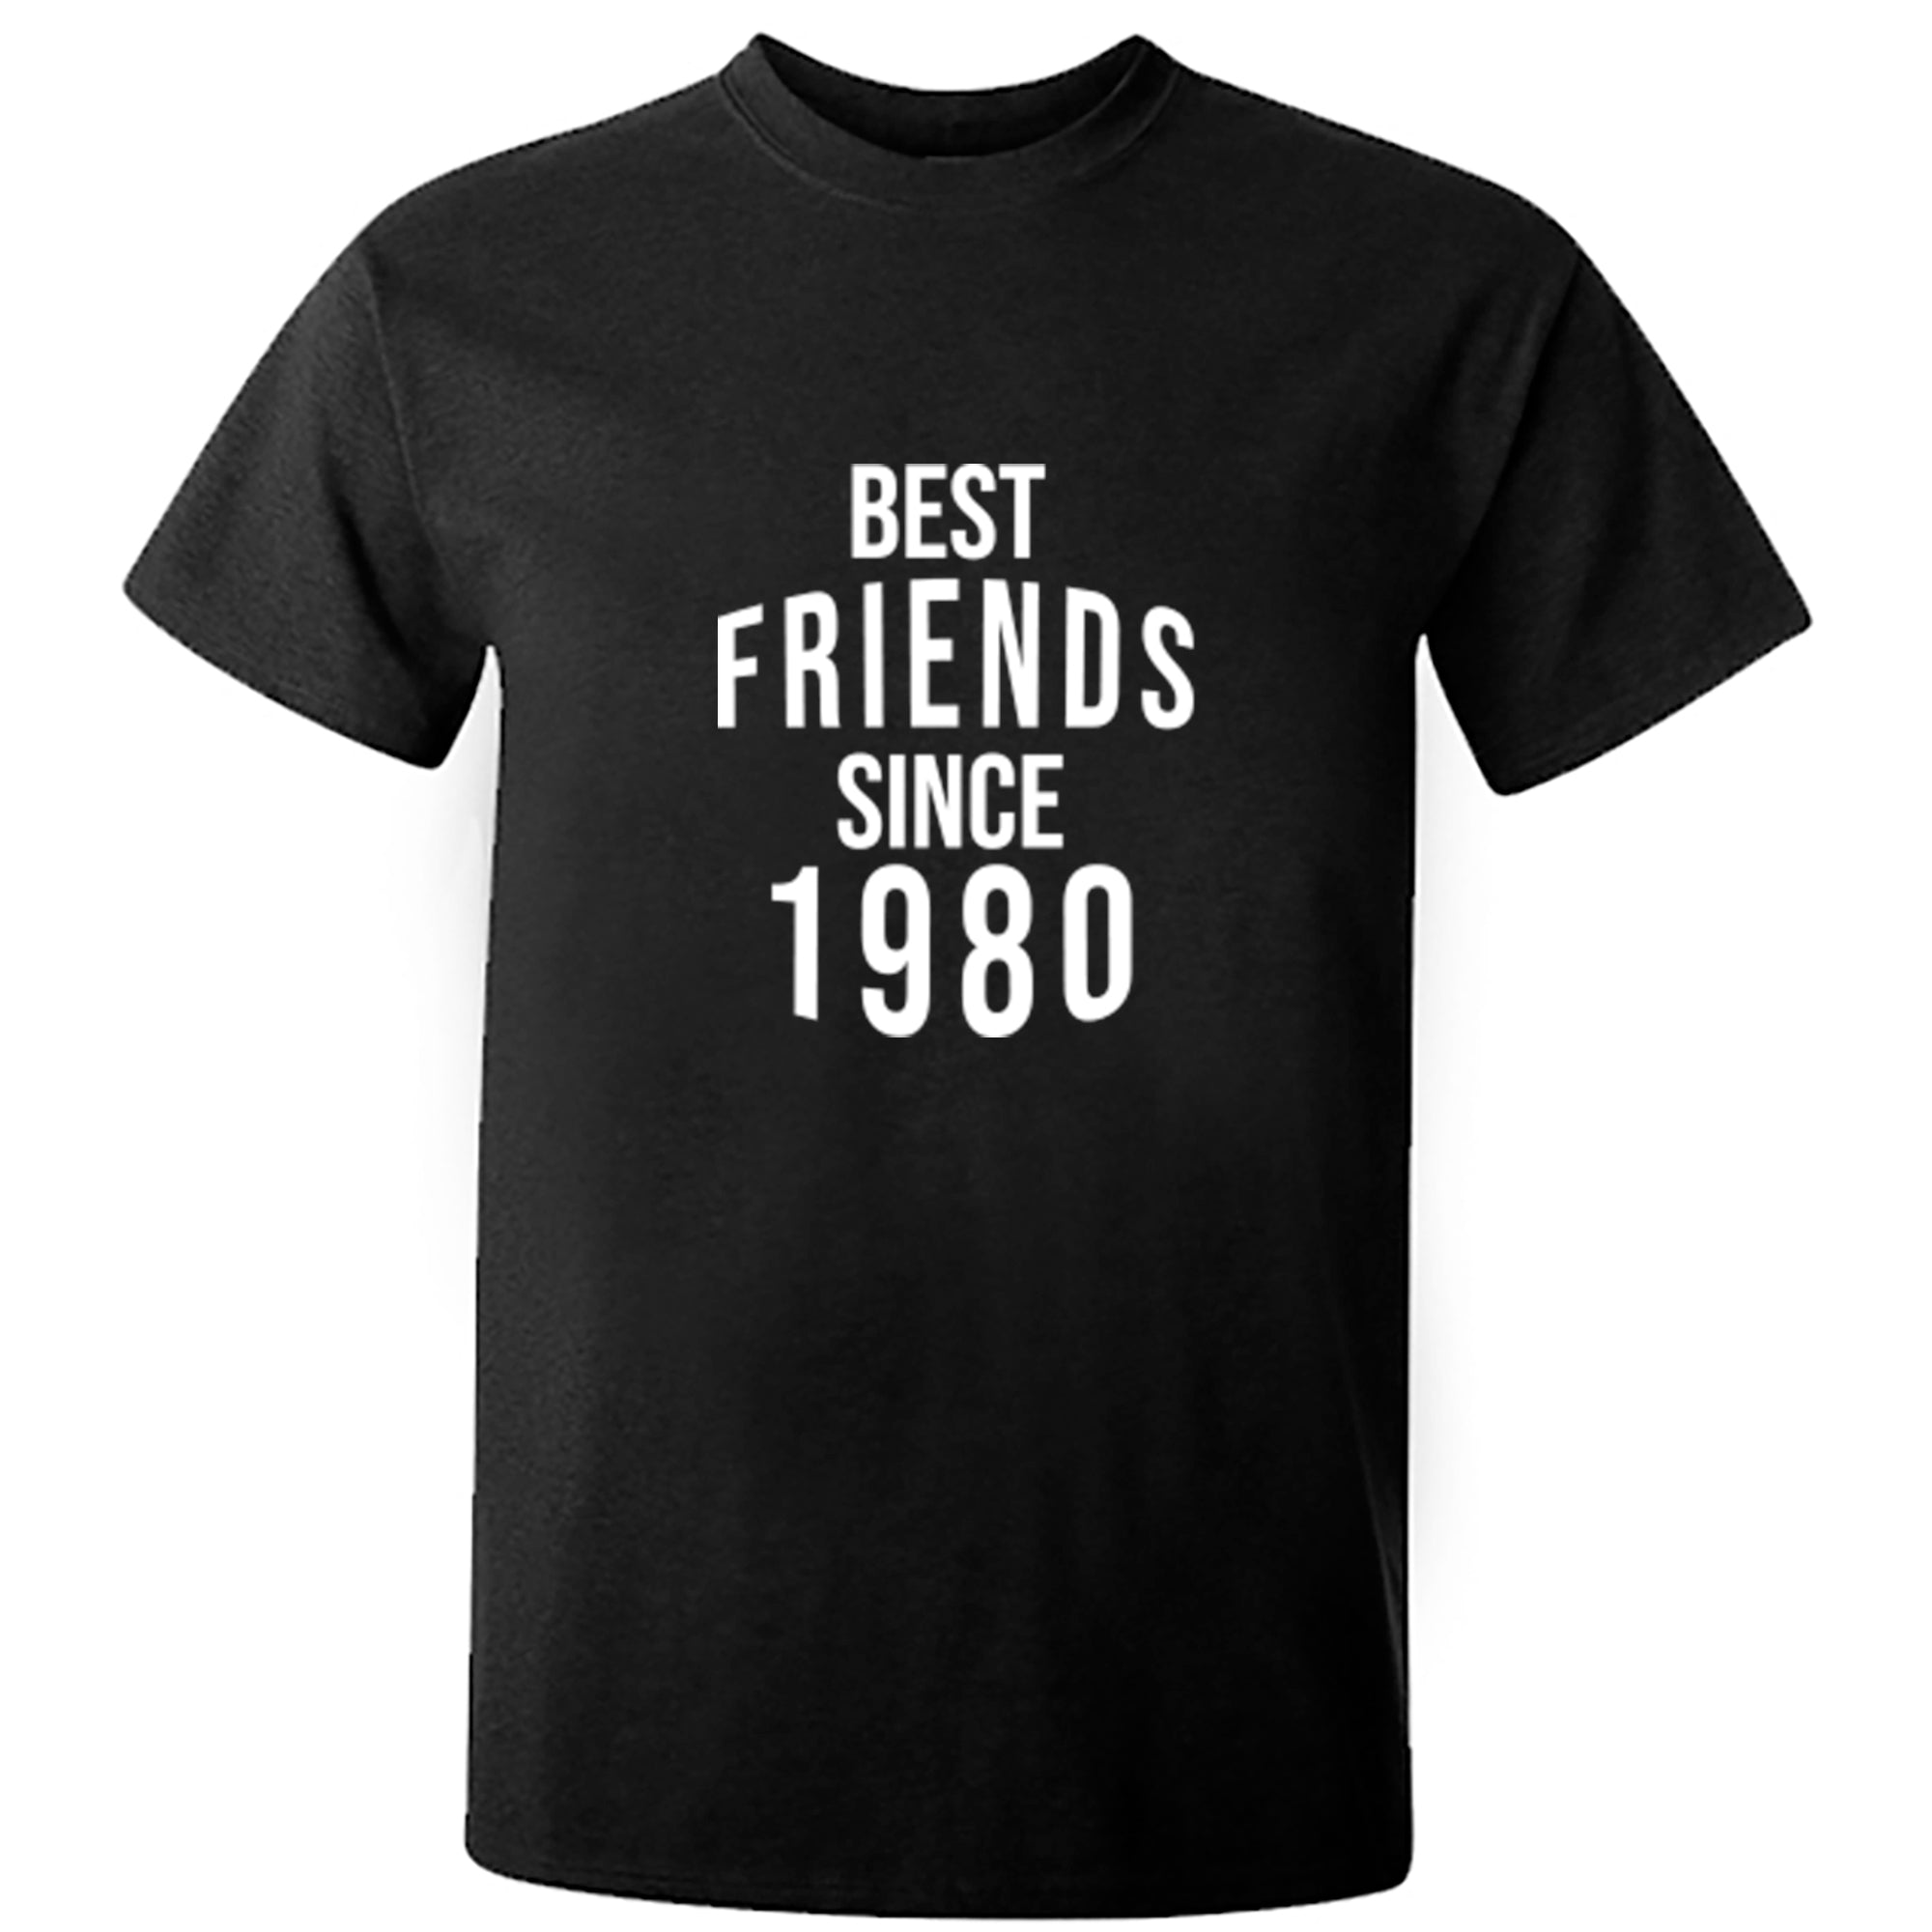 Best Friends Since 1980 Unisex Fit T-Shirt S0559 - Illustrated Identity Ltd.